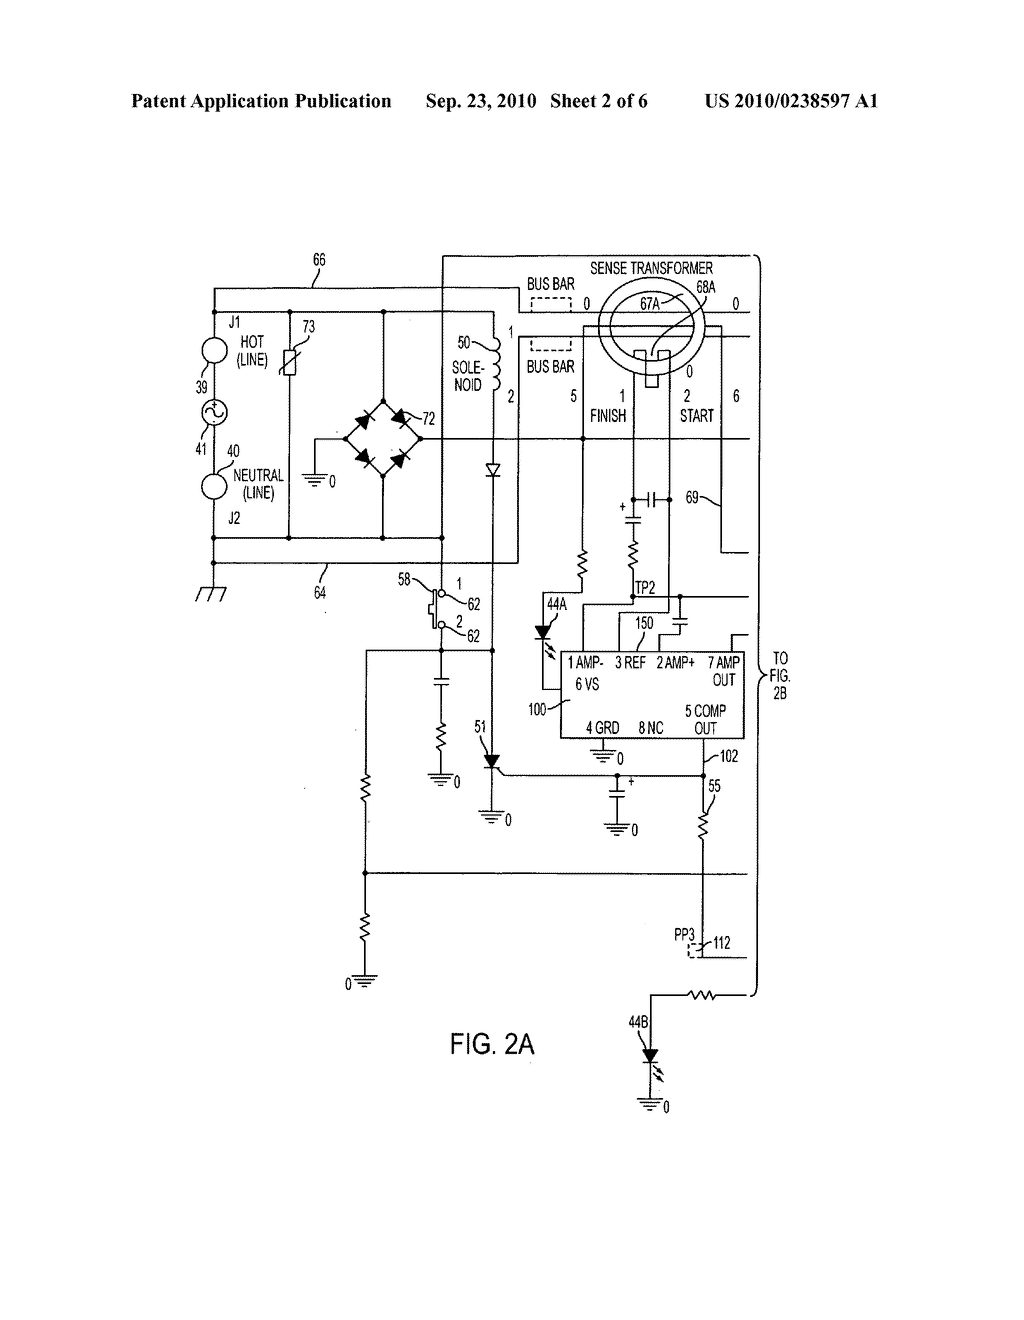 Self Testing Ground Fault Circuit Interrupter Gfci With End Of How To Wire A Life Eol Detection That Rejects False Information Diagram Schematic And Image 03